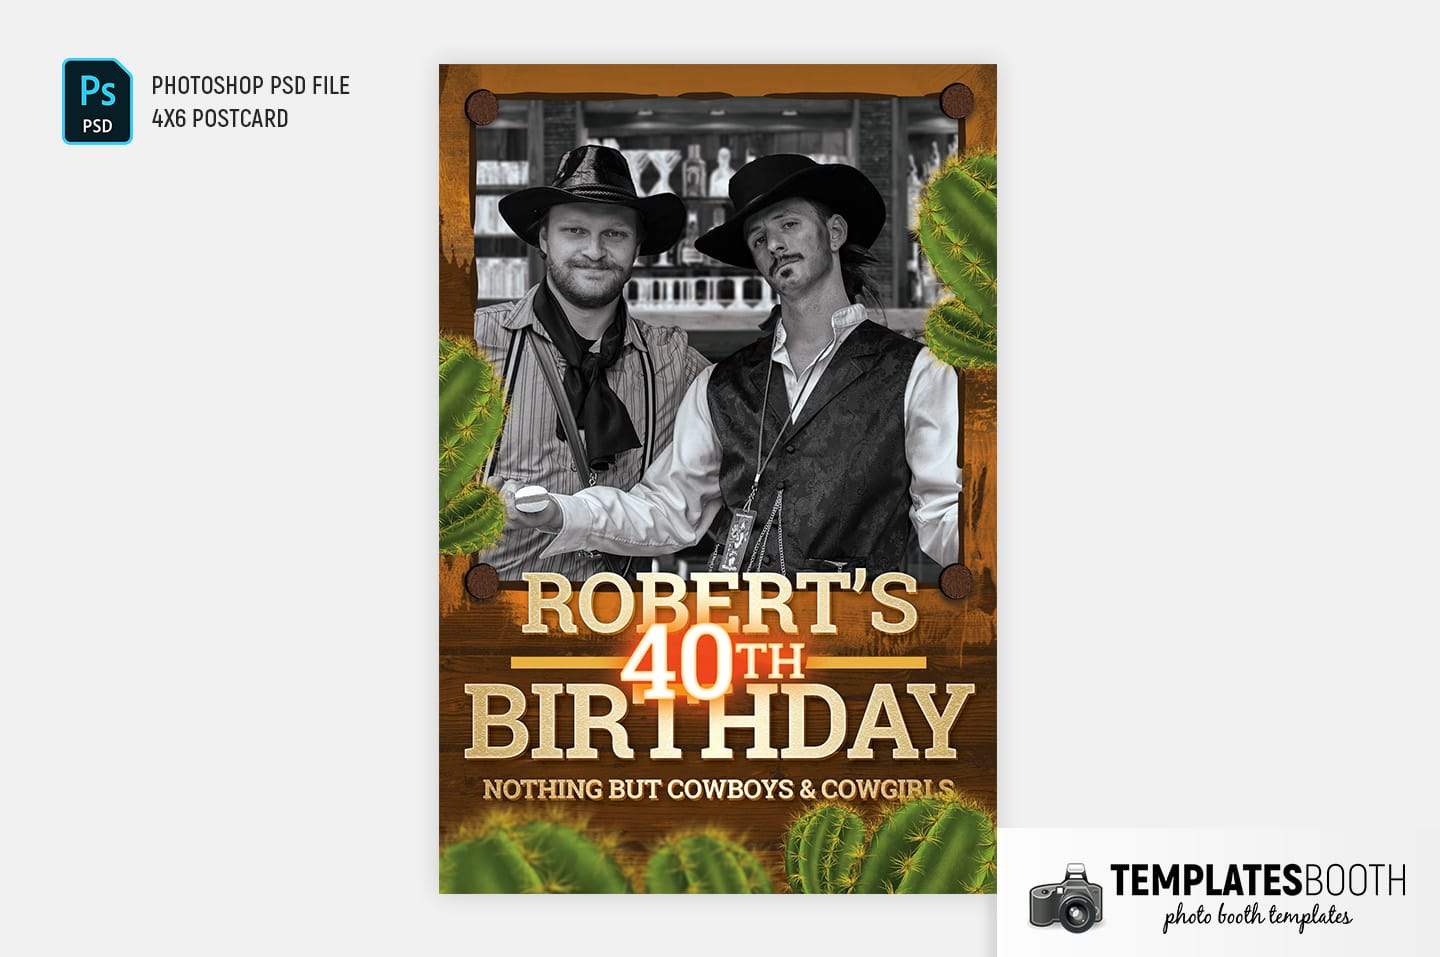 Country & Western Photo Booth Template (4x6 postcard portrait)